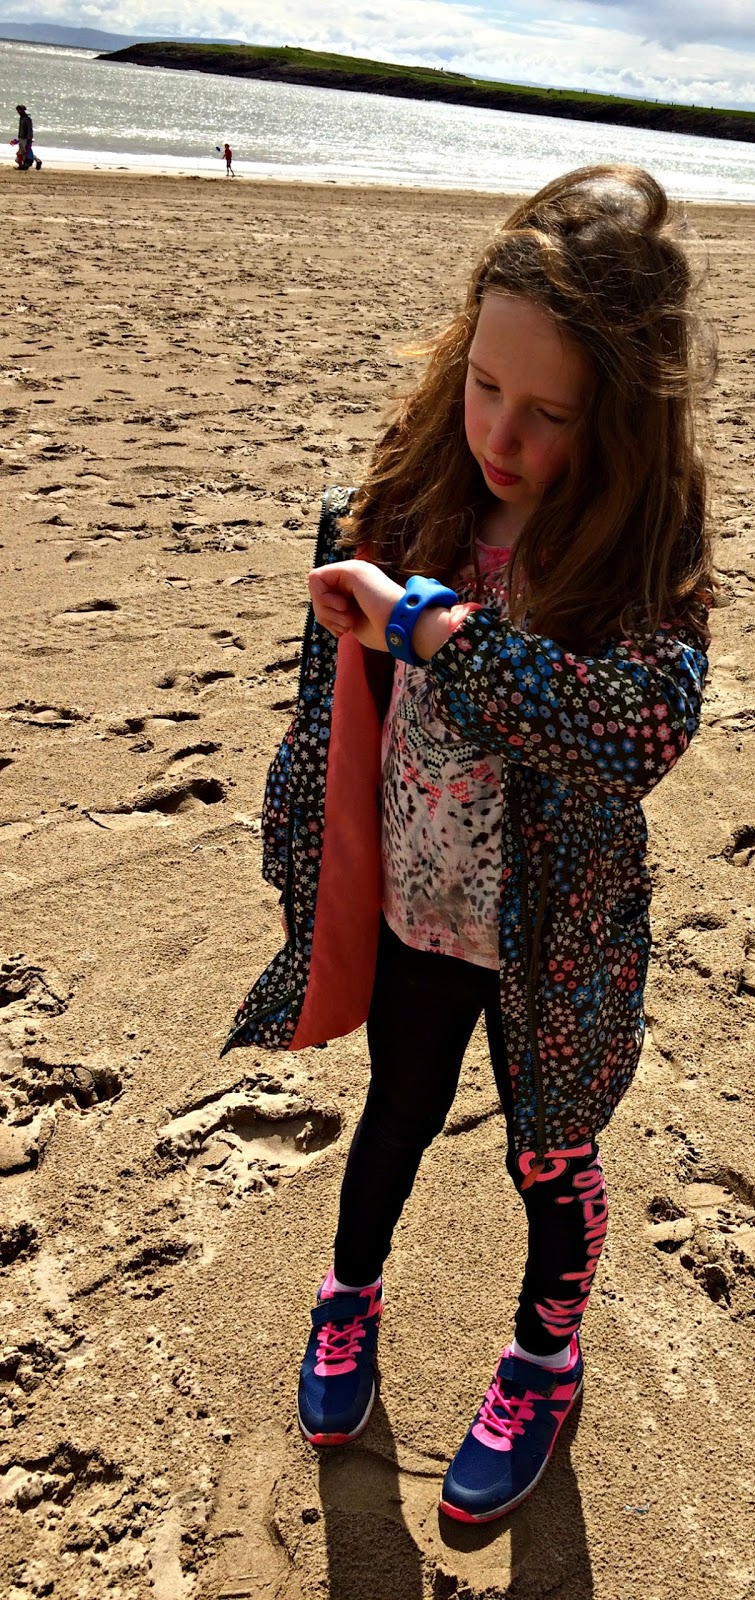 Caitlin looking at the dokiWatch on Barry Island Beach